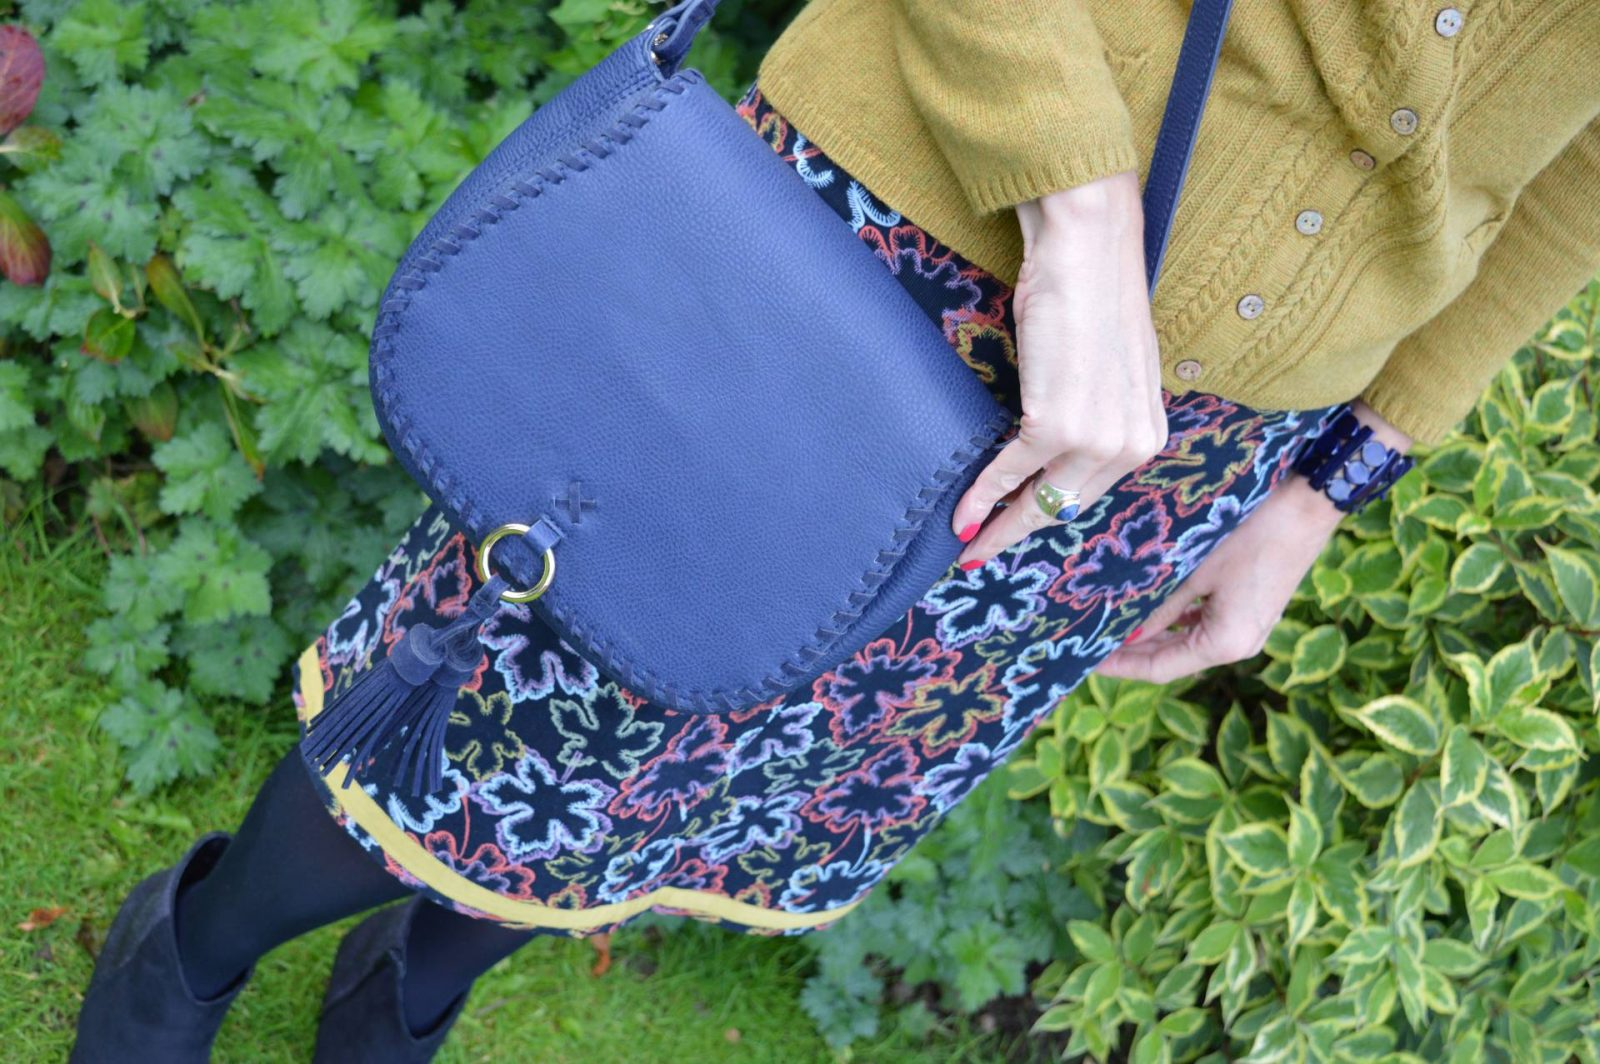 Mistral Cardigan and Leaf Print Skirt Laura Ashley whipstitch saddle bag